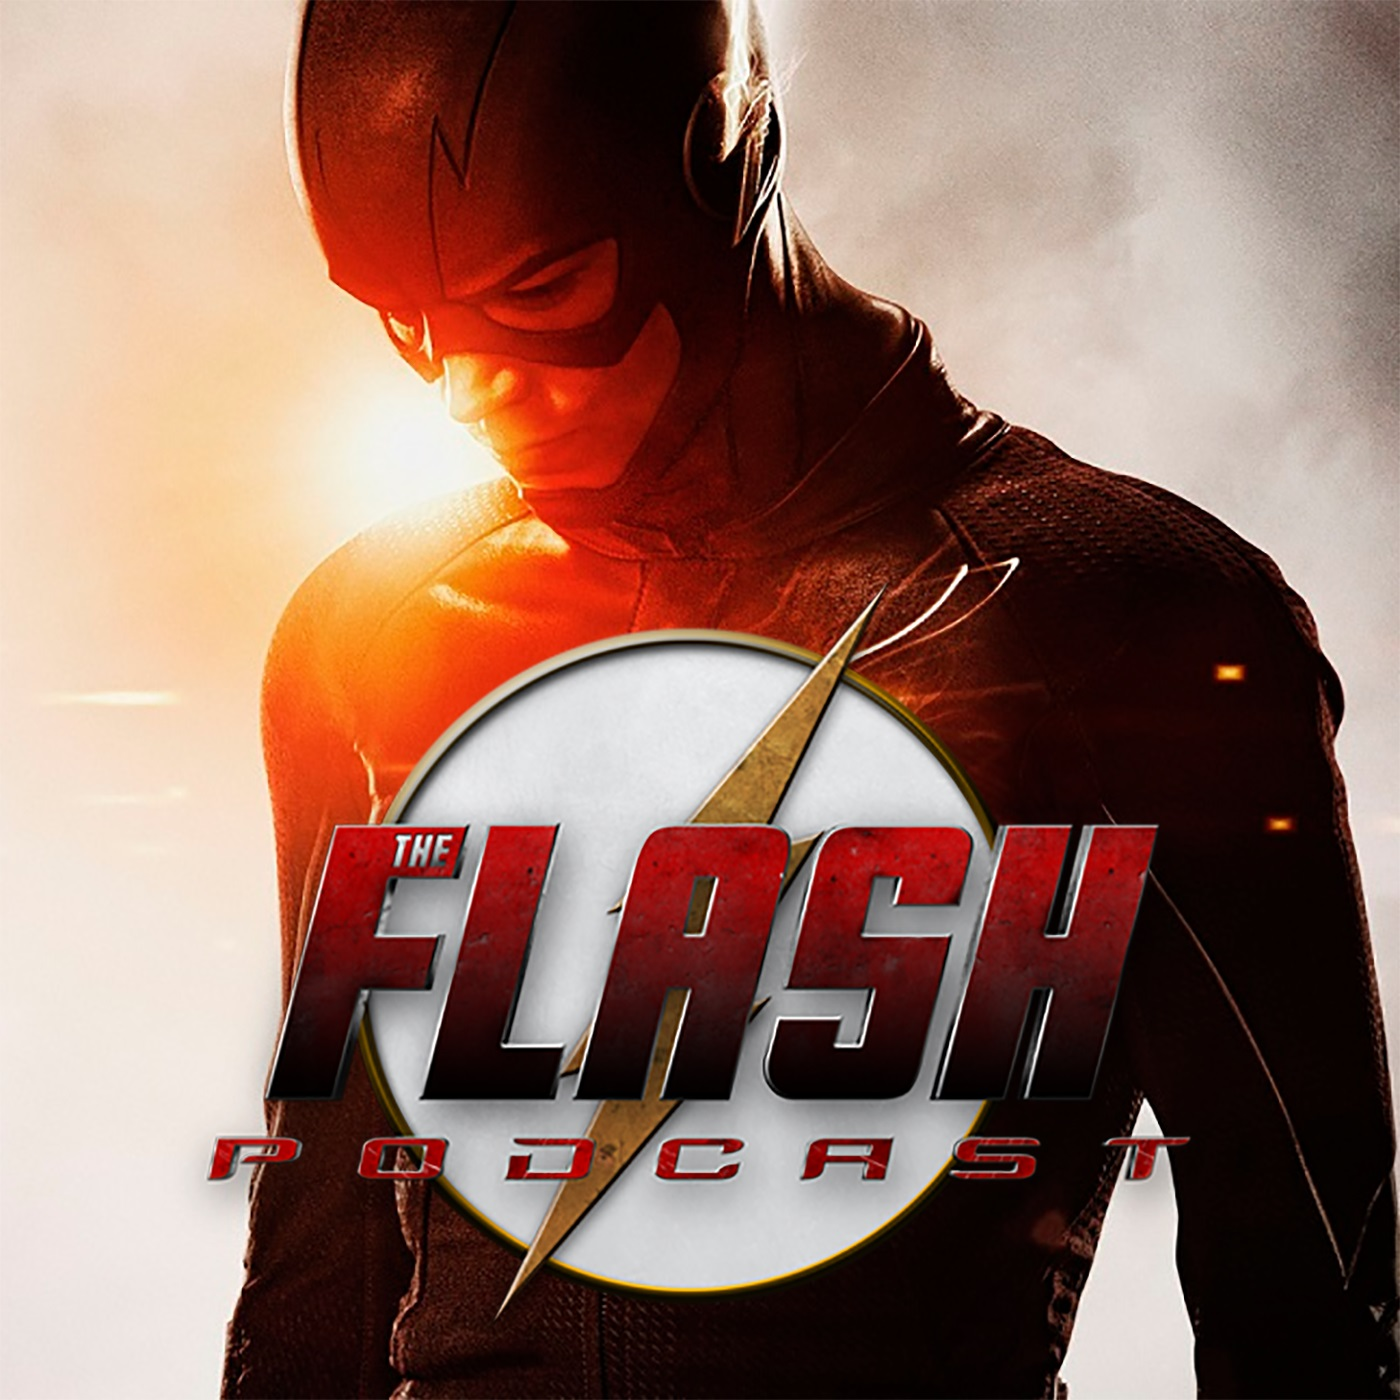 The Flash Podcast Season 2.5 - Episode 4: Hunter Zolomon/Zoom In Season 2